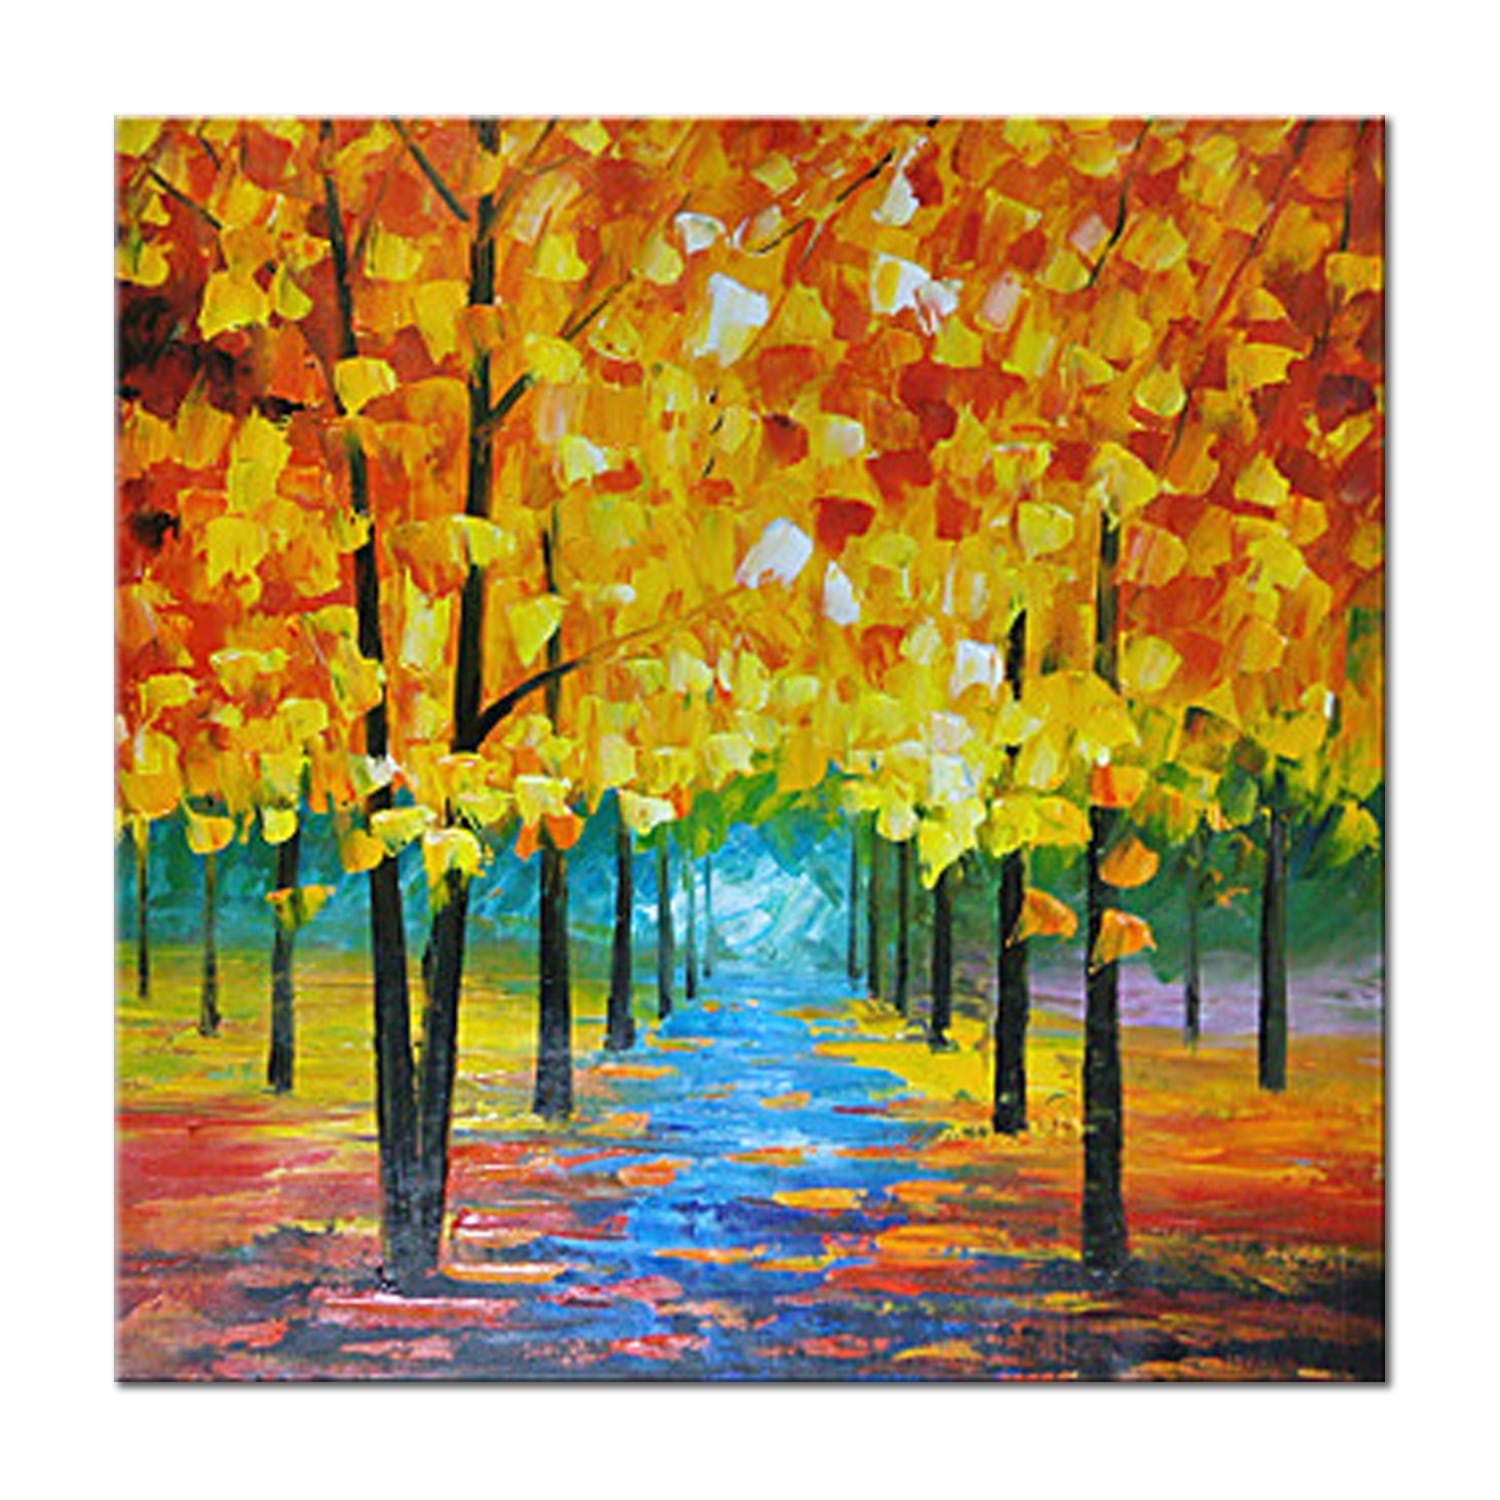 Nature abstract painting for wall decoration